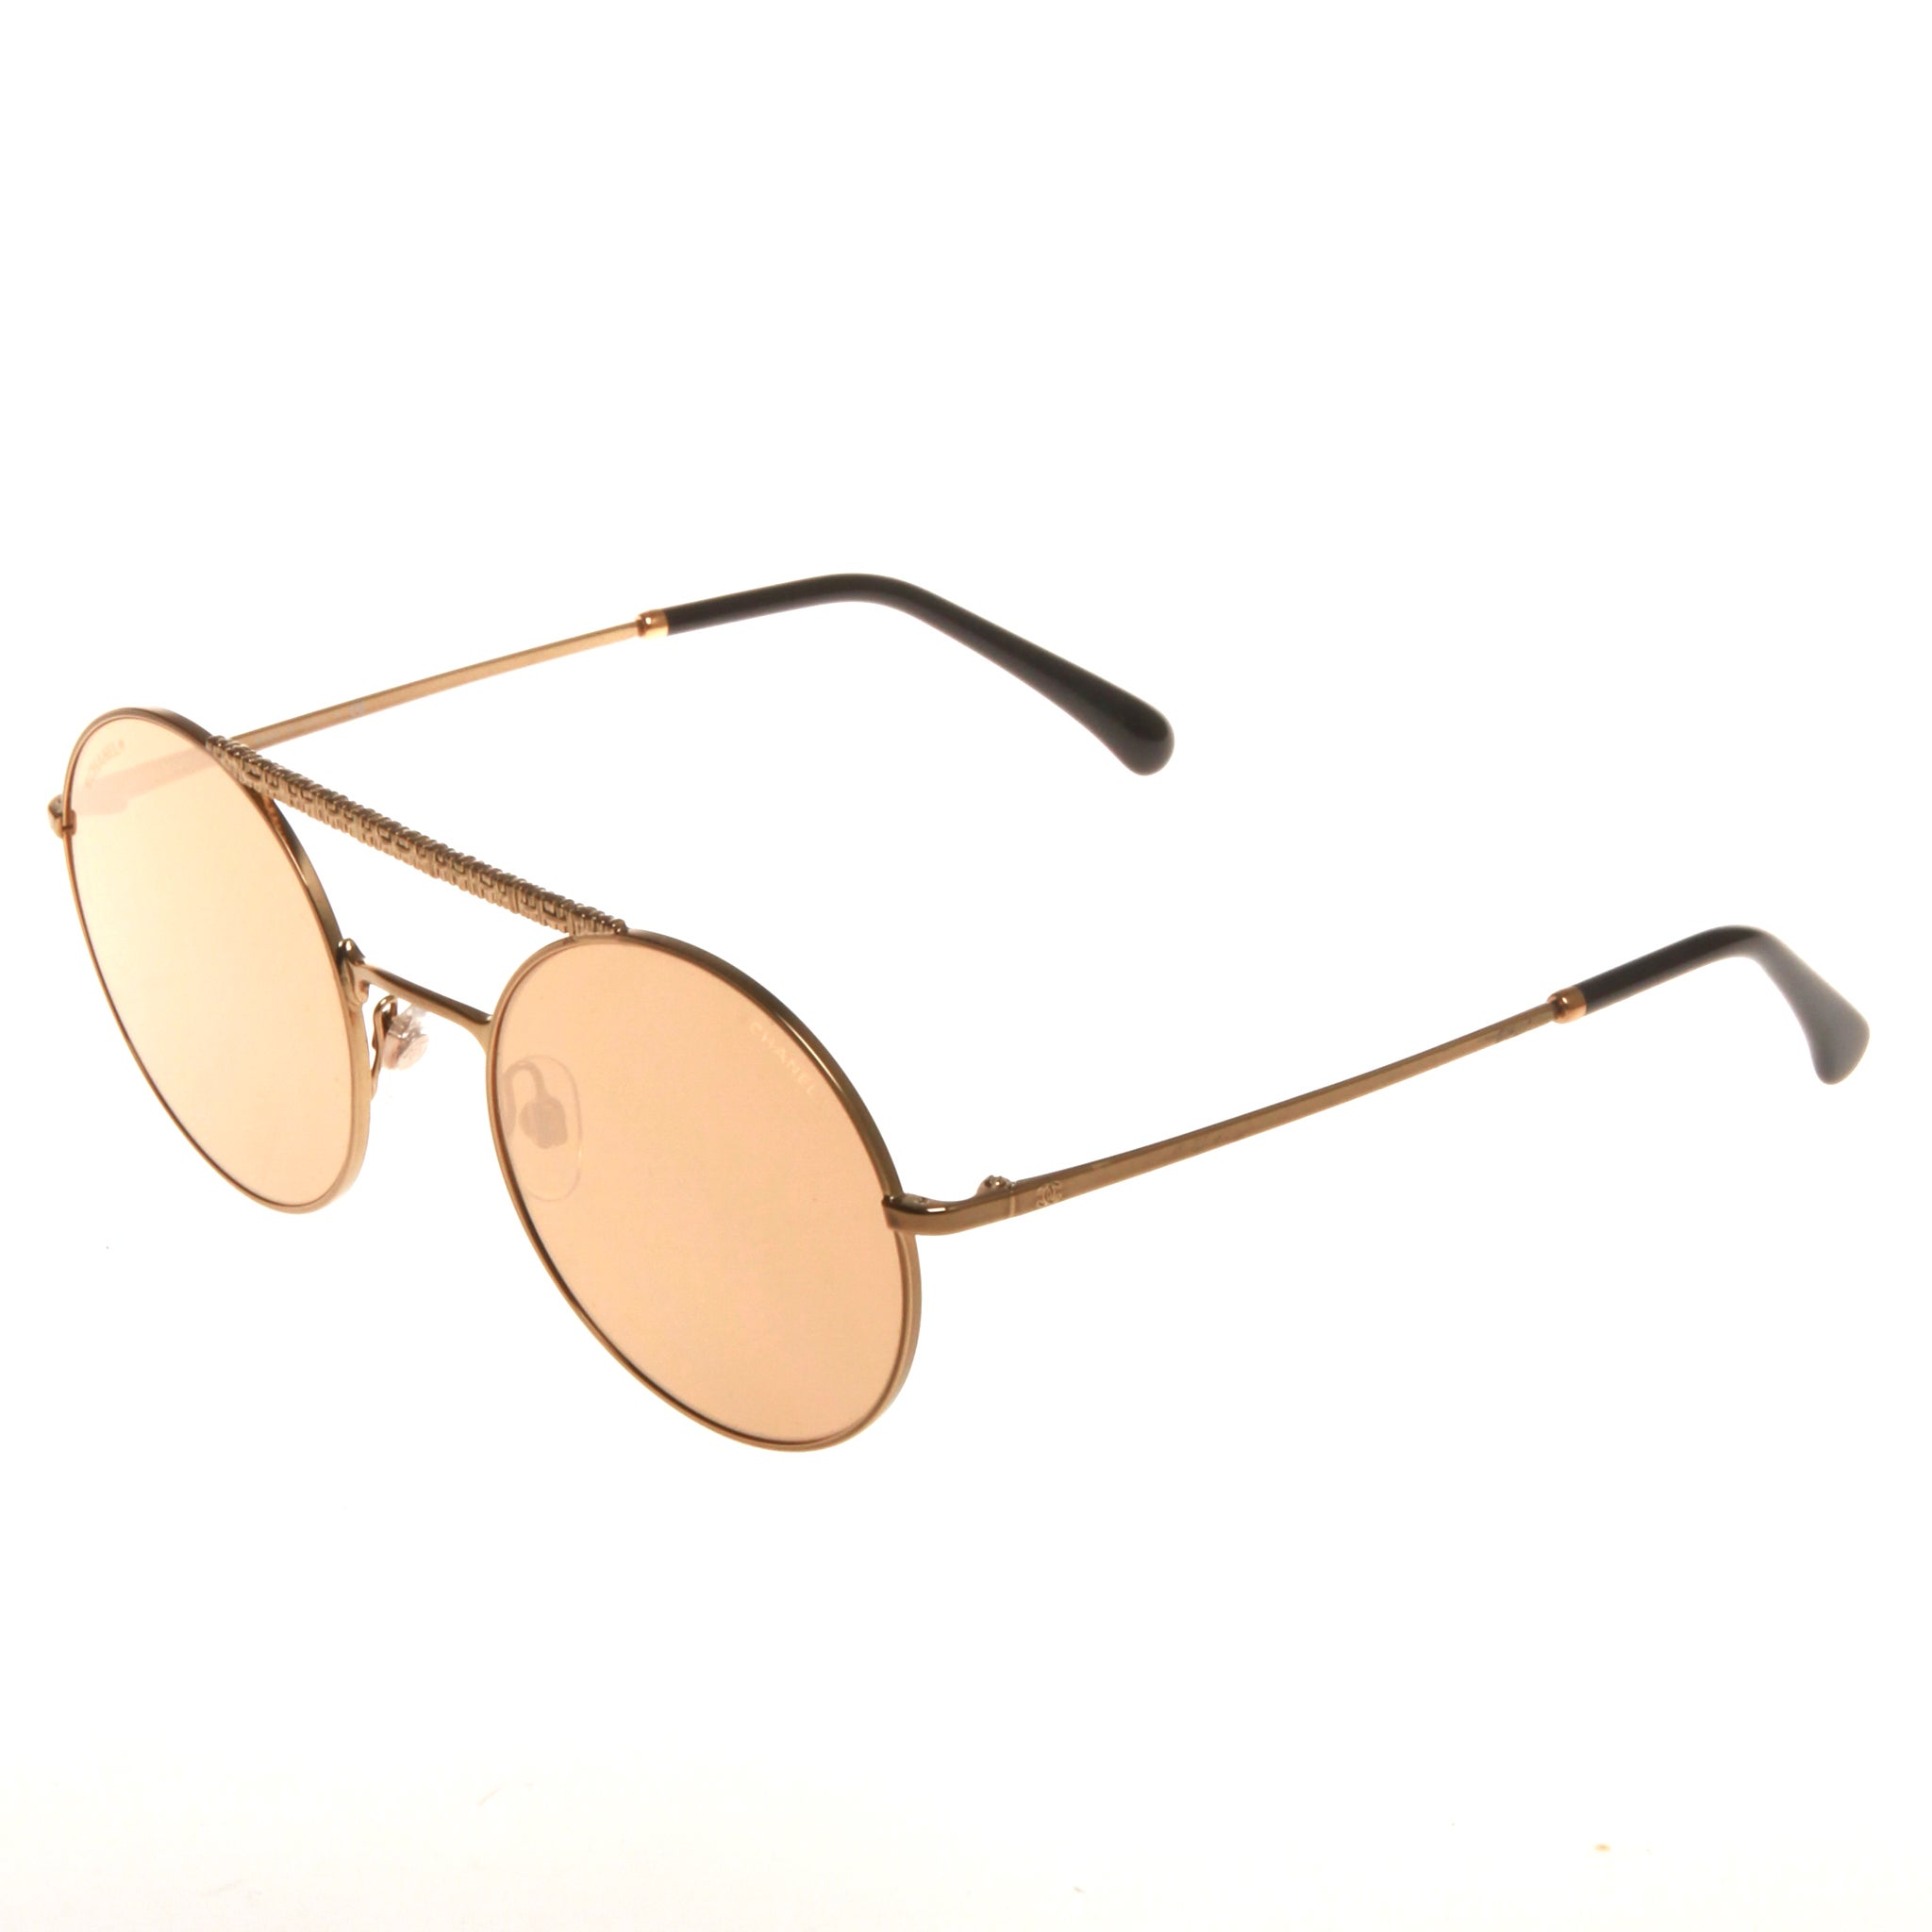 296c69767d7e9 Chanel rose gold sunglasses at 1stdibs